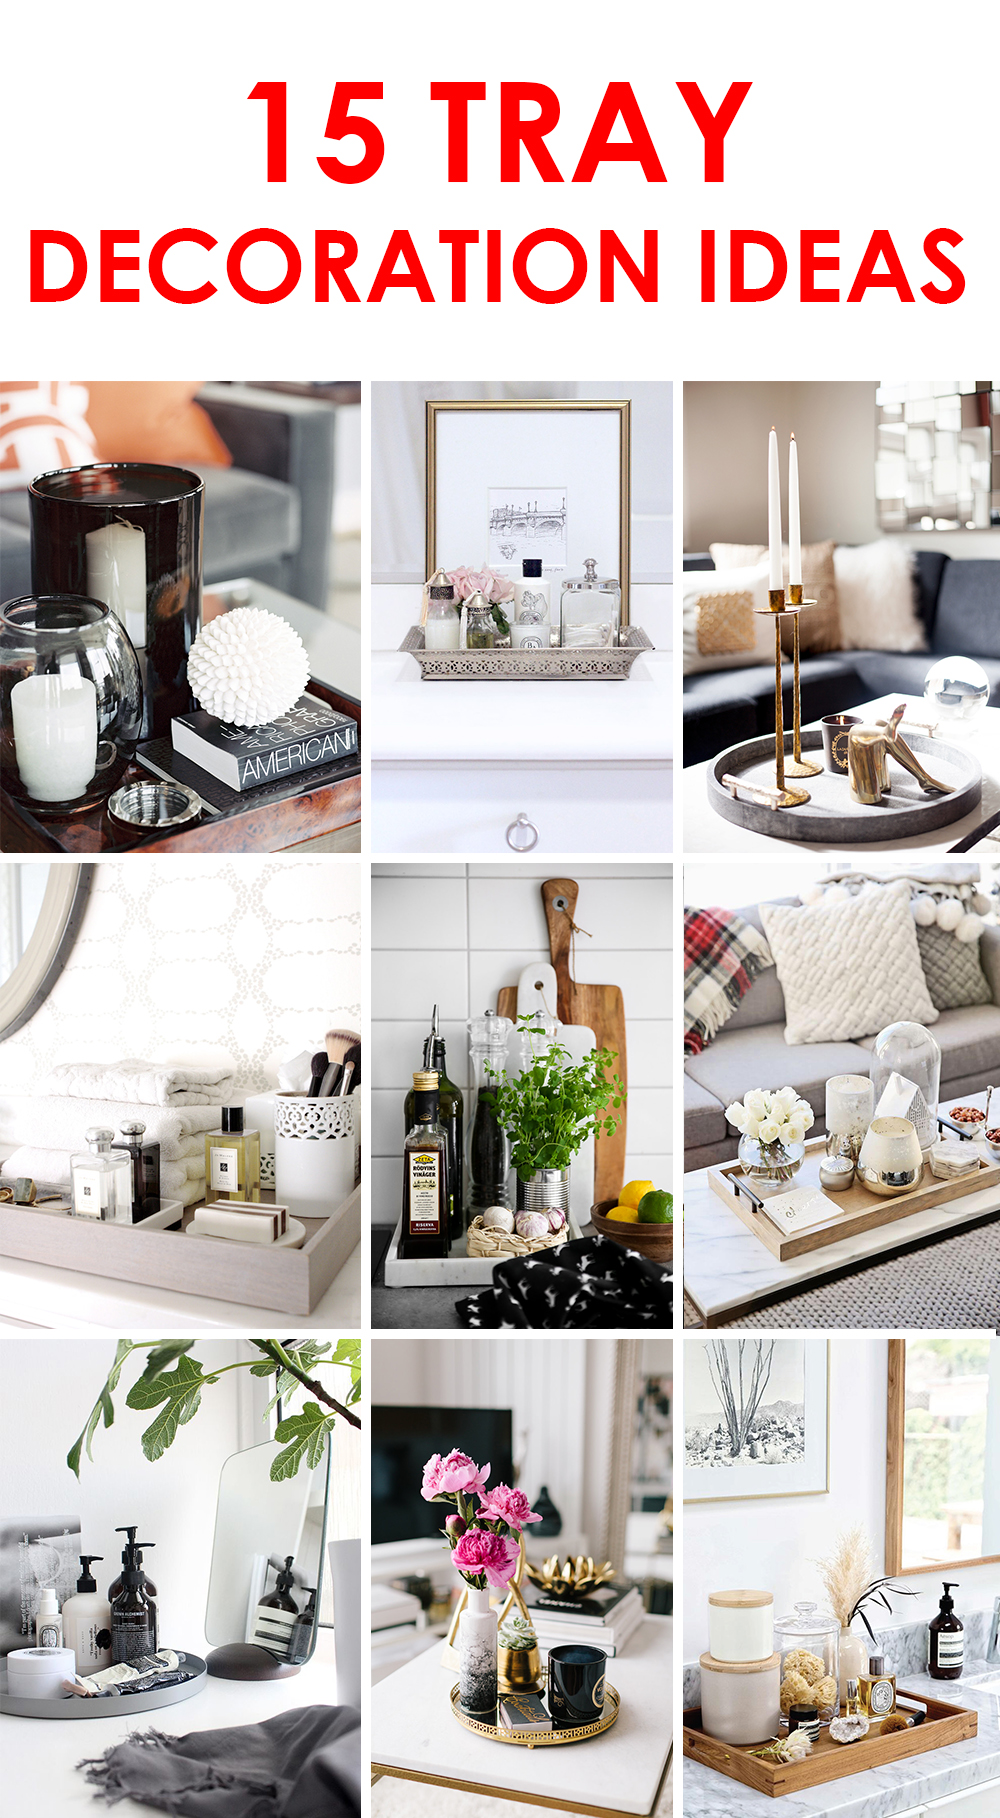 I M Not Surprised About Such Their Pority That S A Rather Convenient Way To Neatly Group Interior Details And Accessories For The Tray Decoration